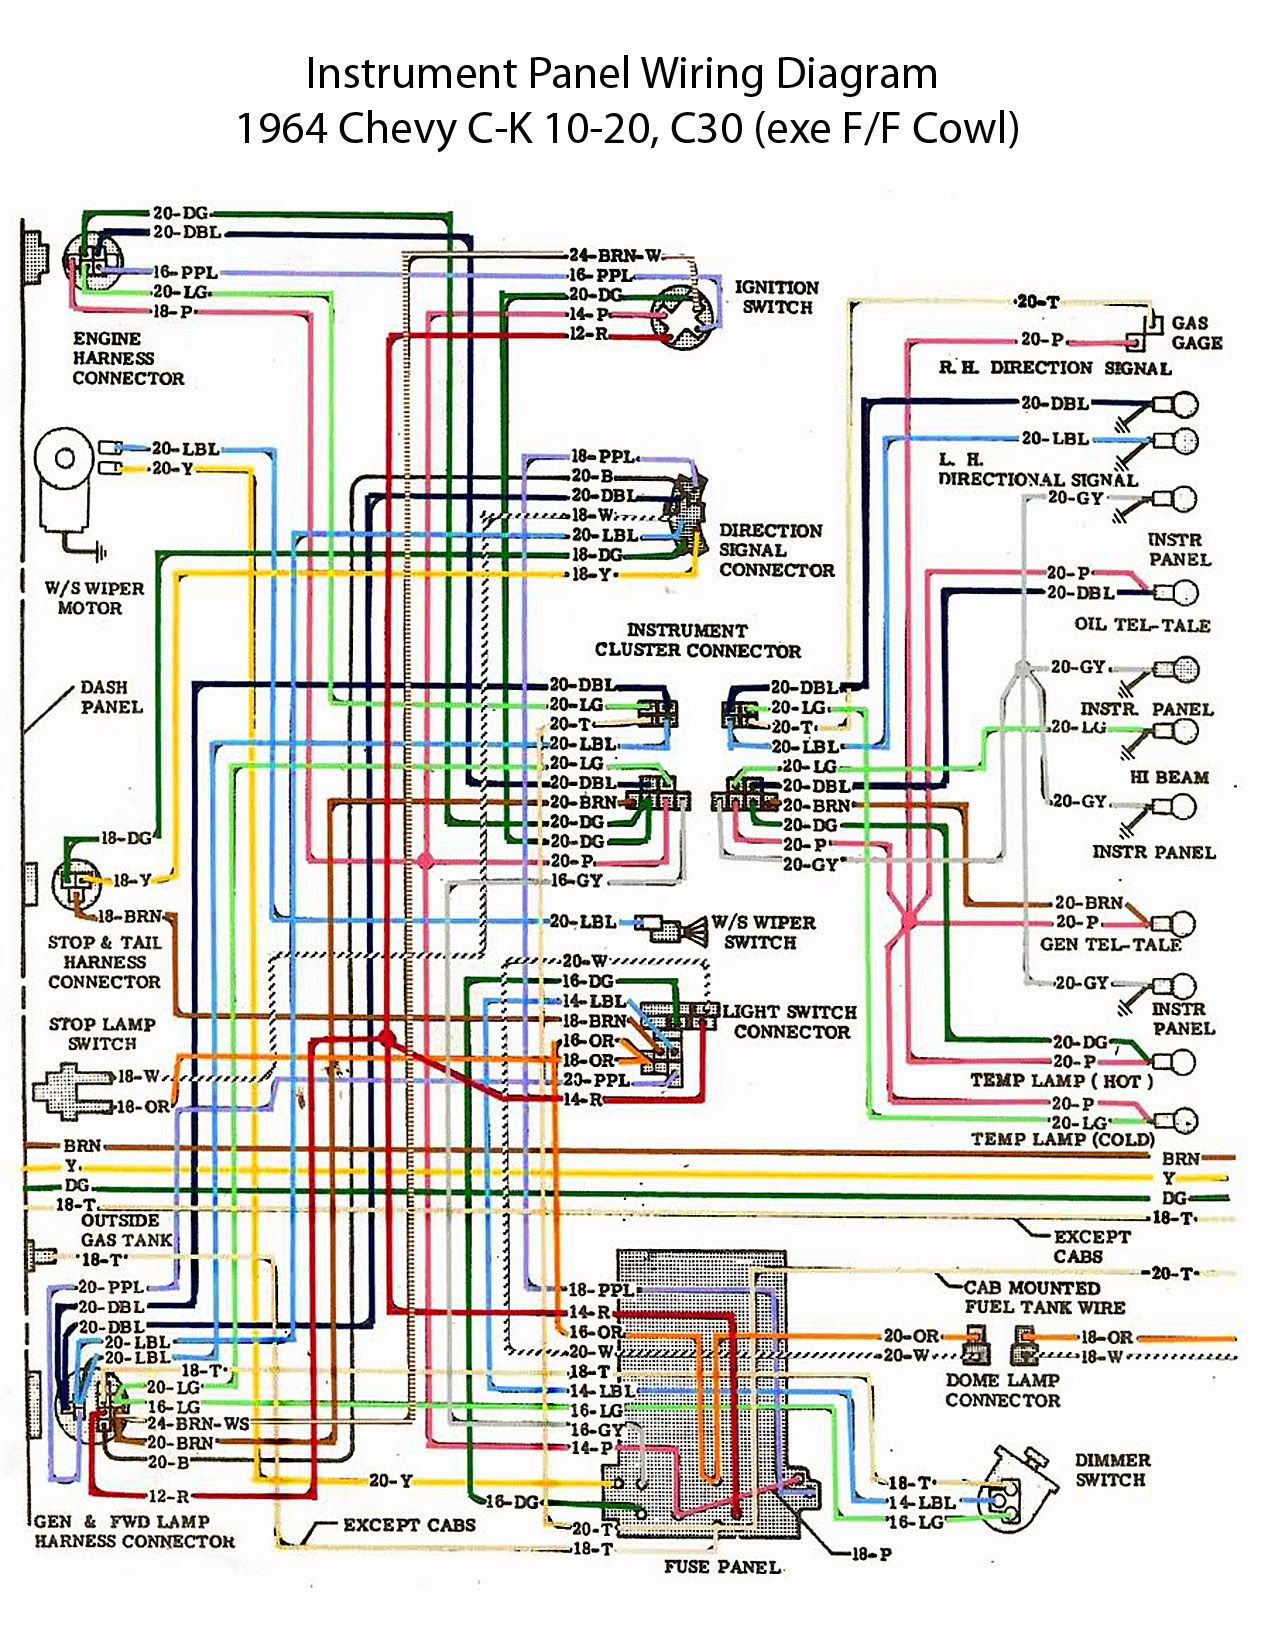 29f907bf017db832106977dbff5b5b31 wiring hot rod lights hot rod car and truck tech pinterest Wiring Harness Diagram at suagrazia.org